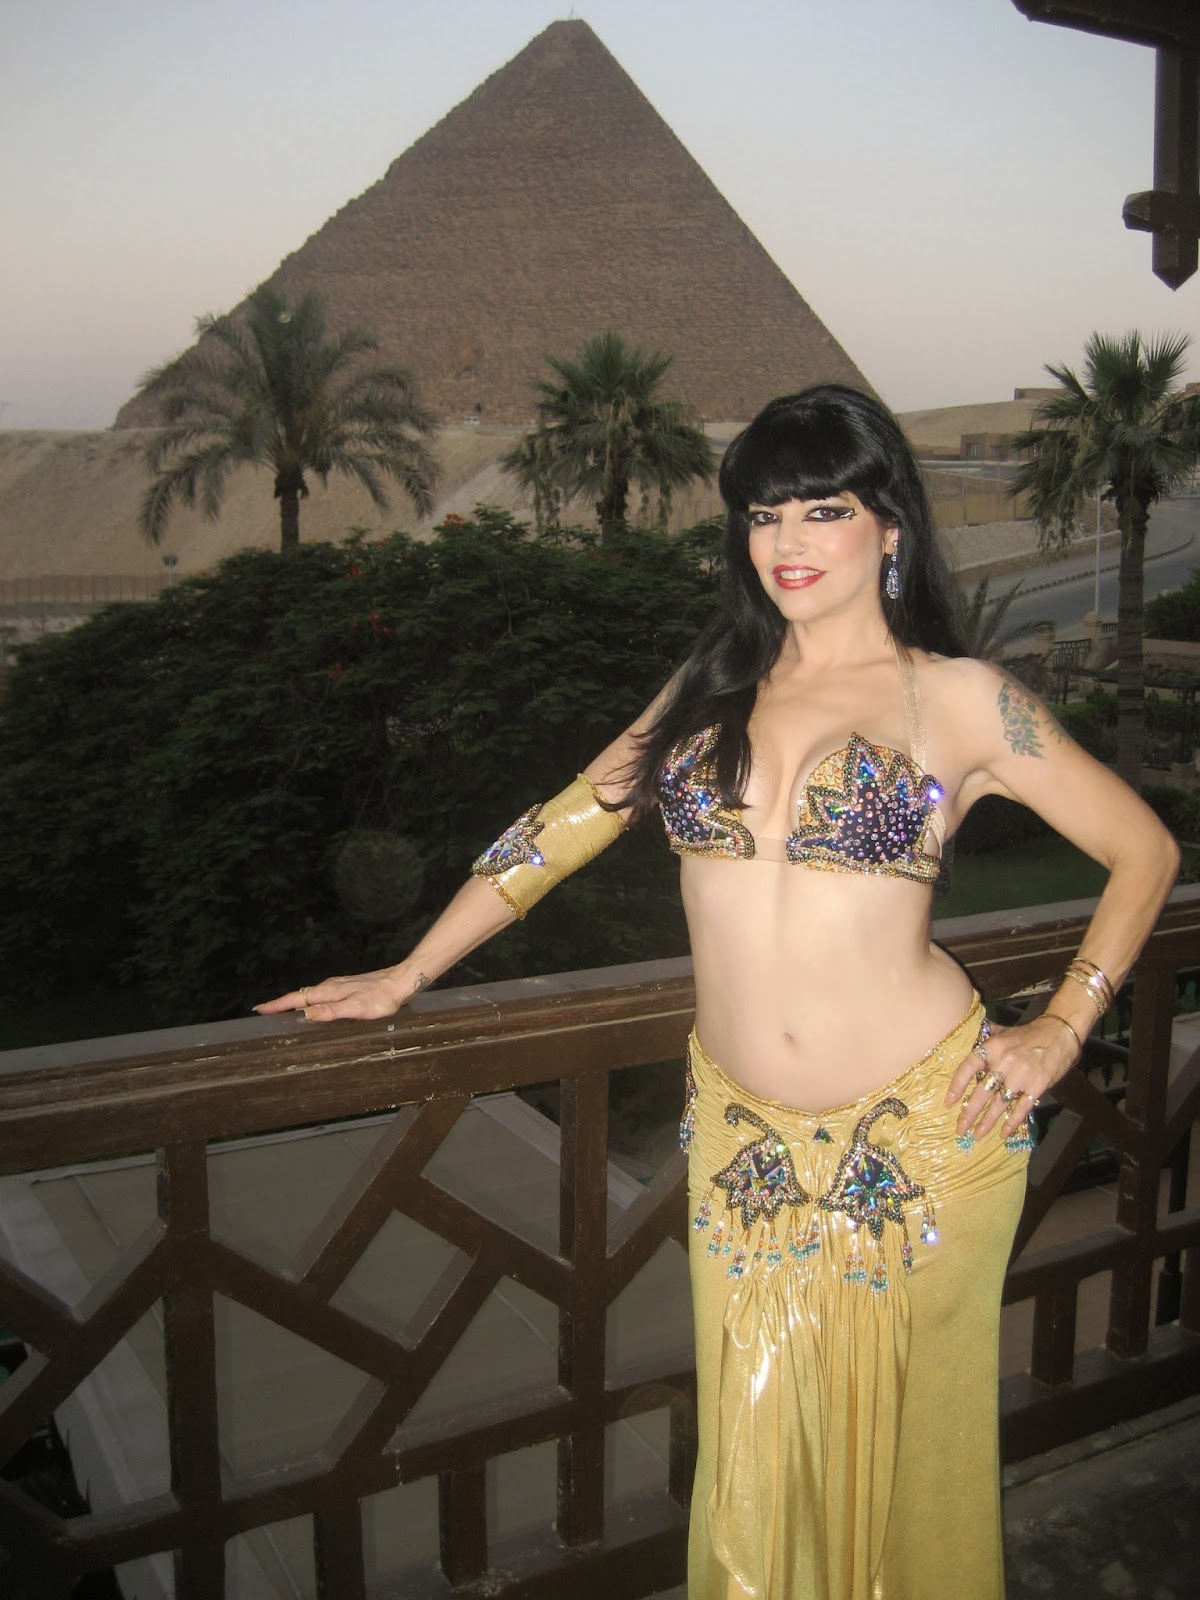 cairo dating sites